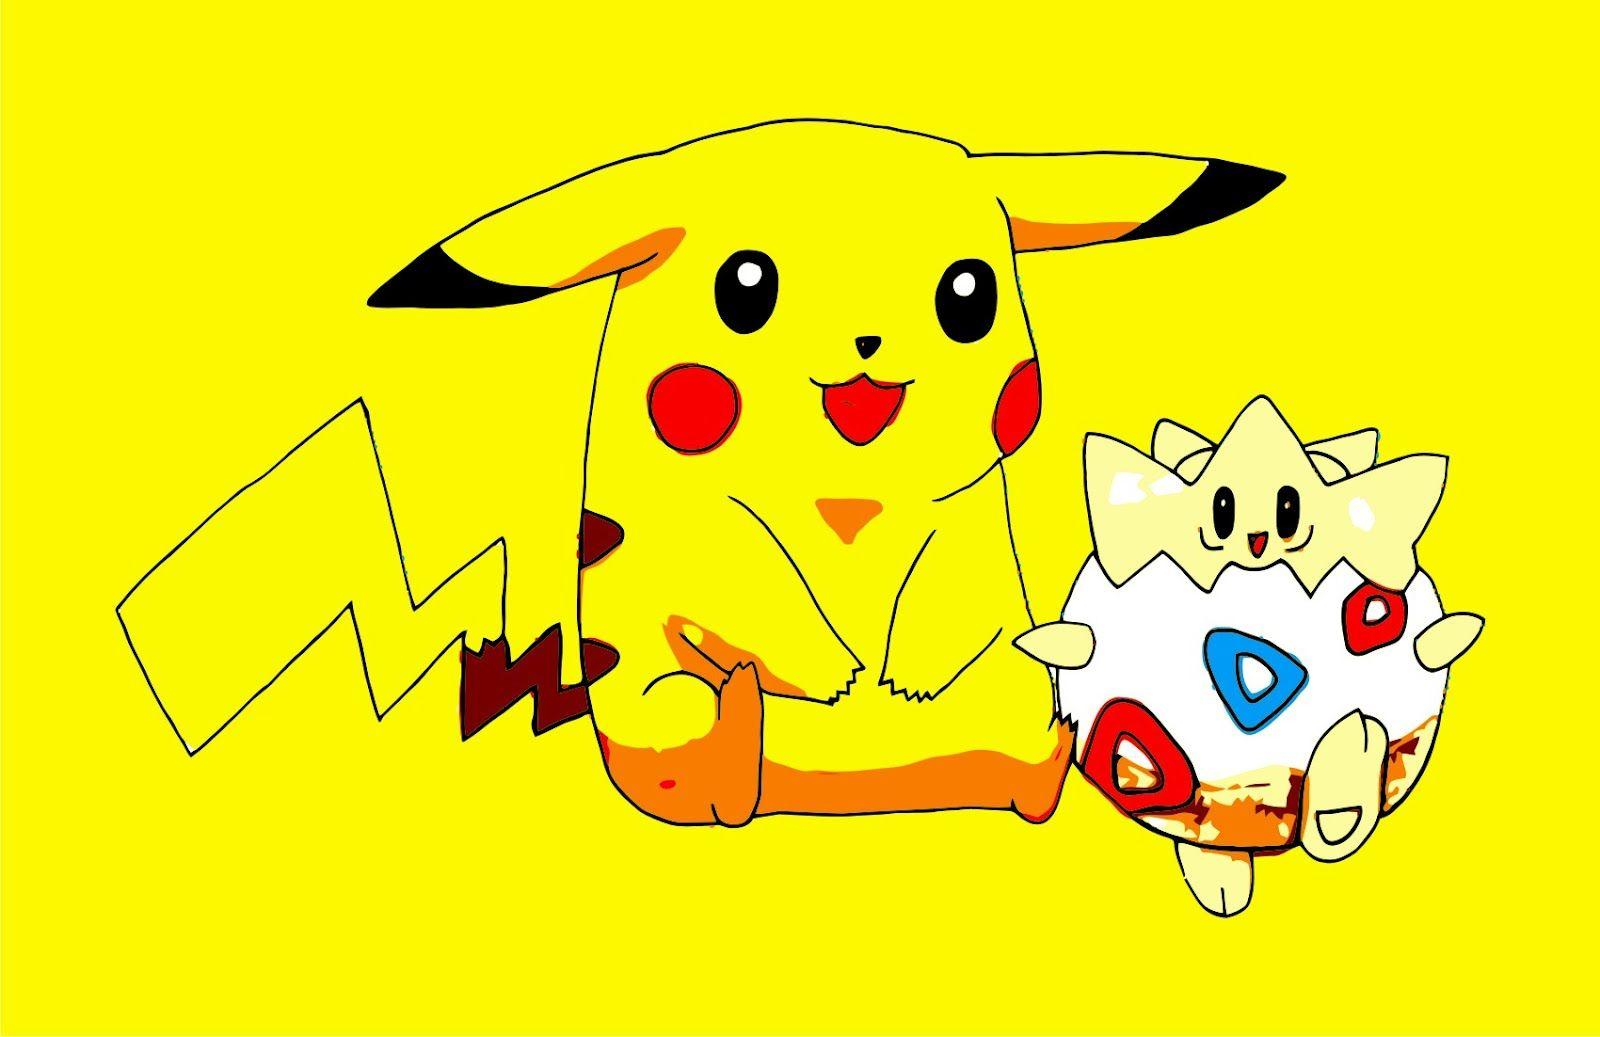 Togepi And Pikachu